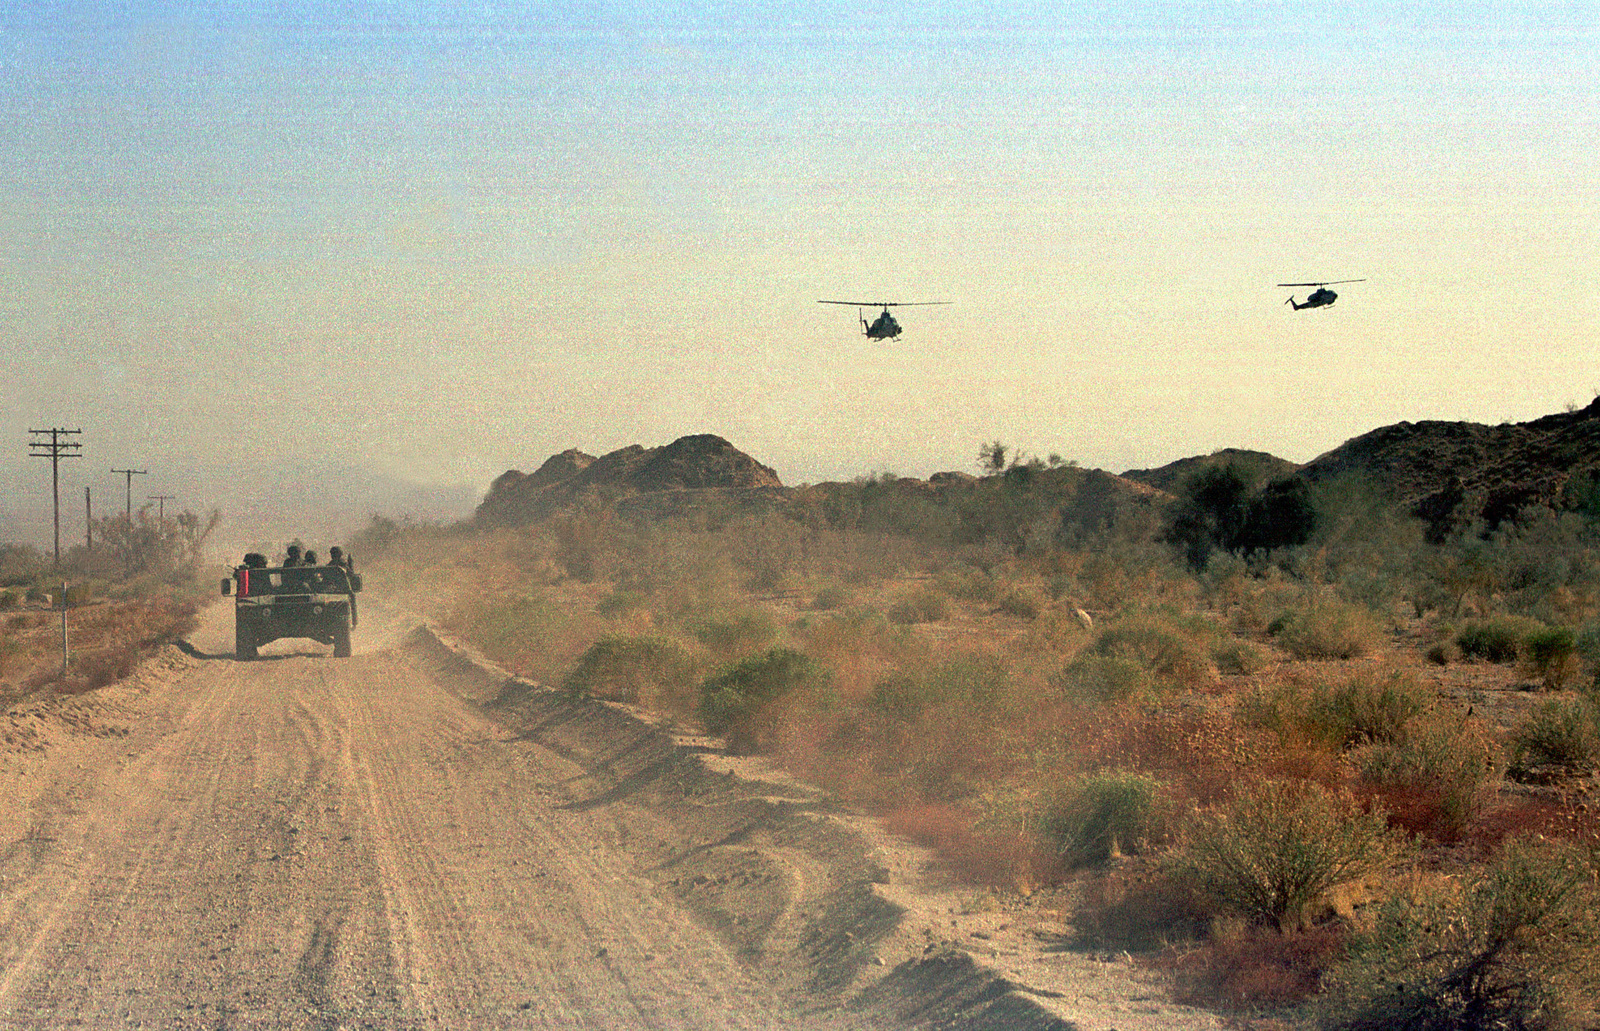 Marines from the Wing Support Squadron 371 (MWSS-371) on a reconnaissance patrol in their High-Mobility Multipurpose Wheeled Vehicle (HMMWV) are escorted by two AH-1W Cobra helicopters providing close air support during Weapons and Tactics Instructions Class (WTI) 2-99